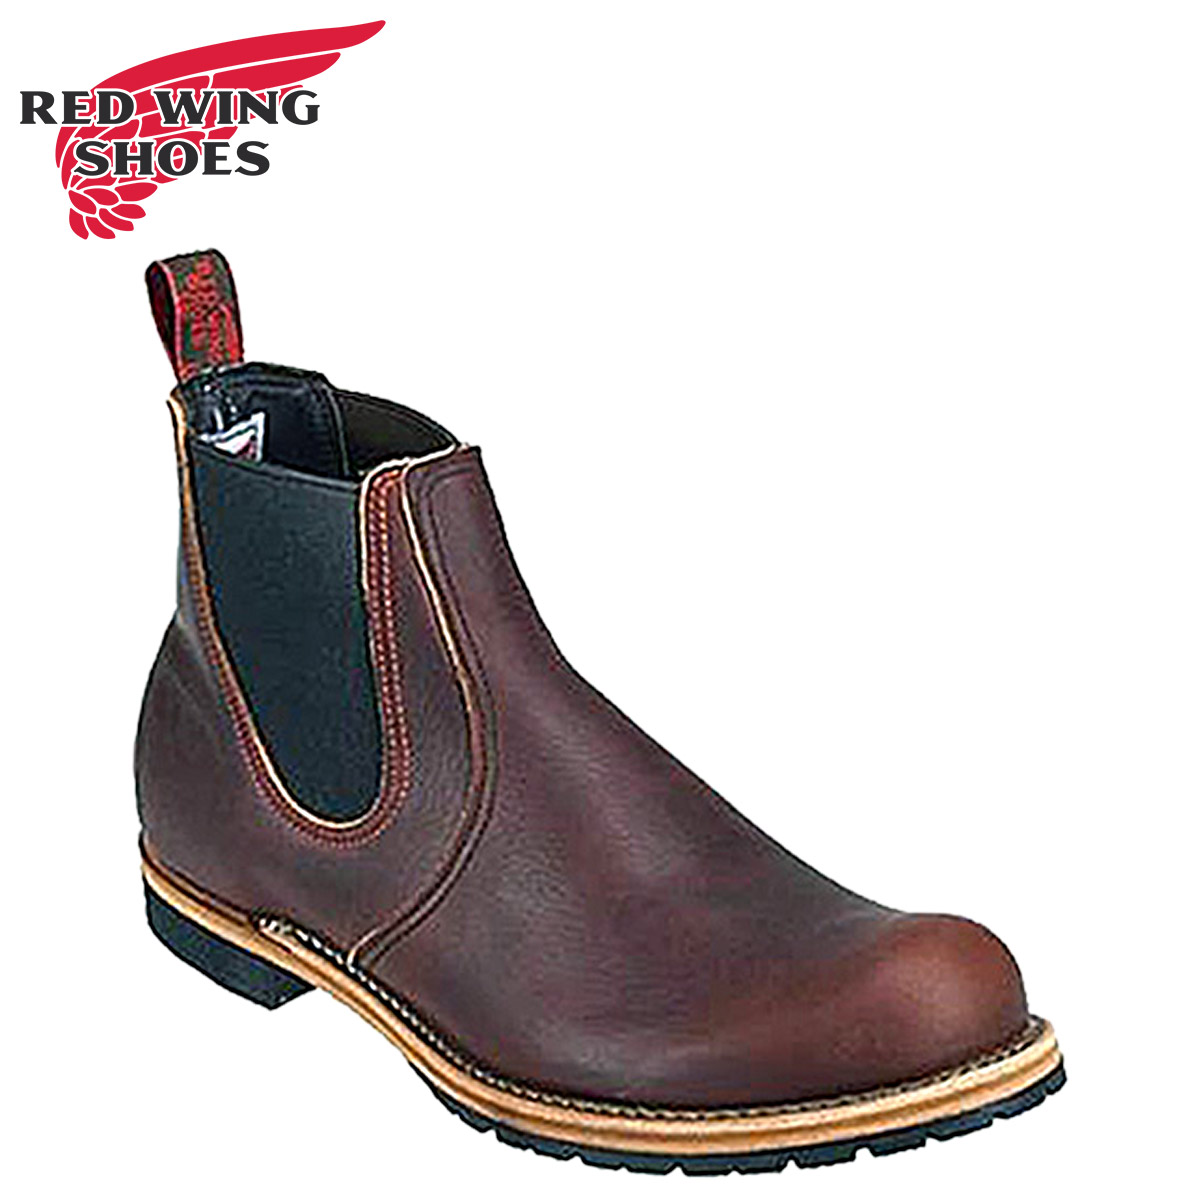 Whats up Sports | Rakuten Global Market: Redwing RED WING Couleur ...